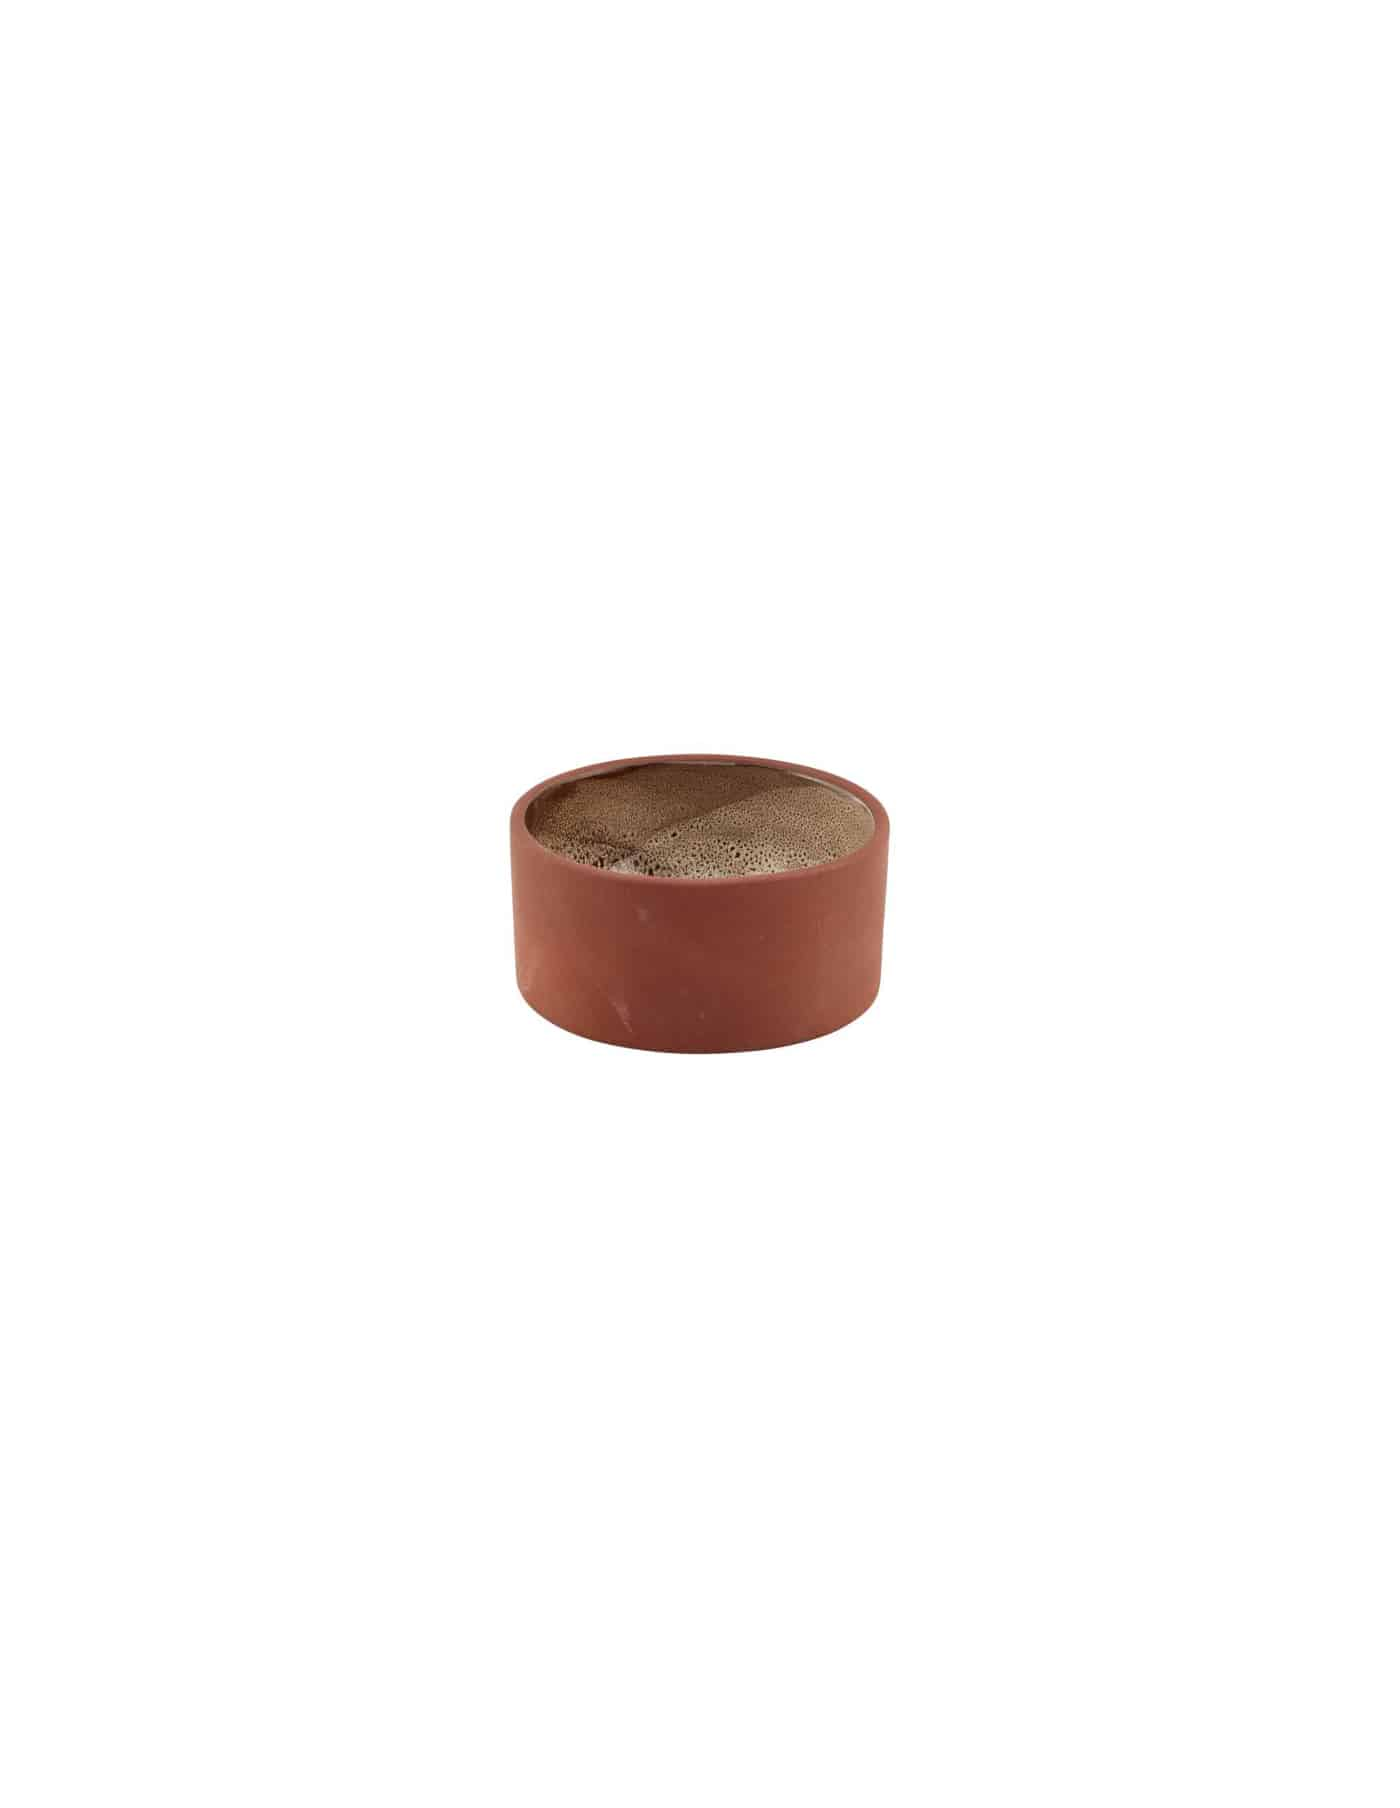 Small Retro Terracotta Bowl, House Doctor